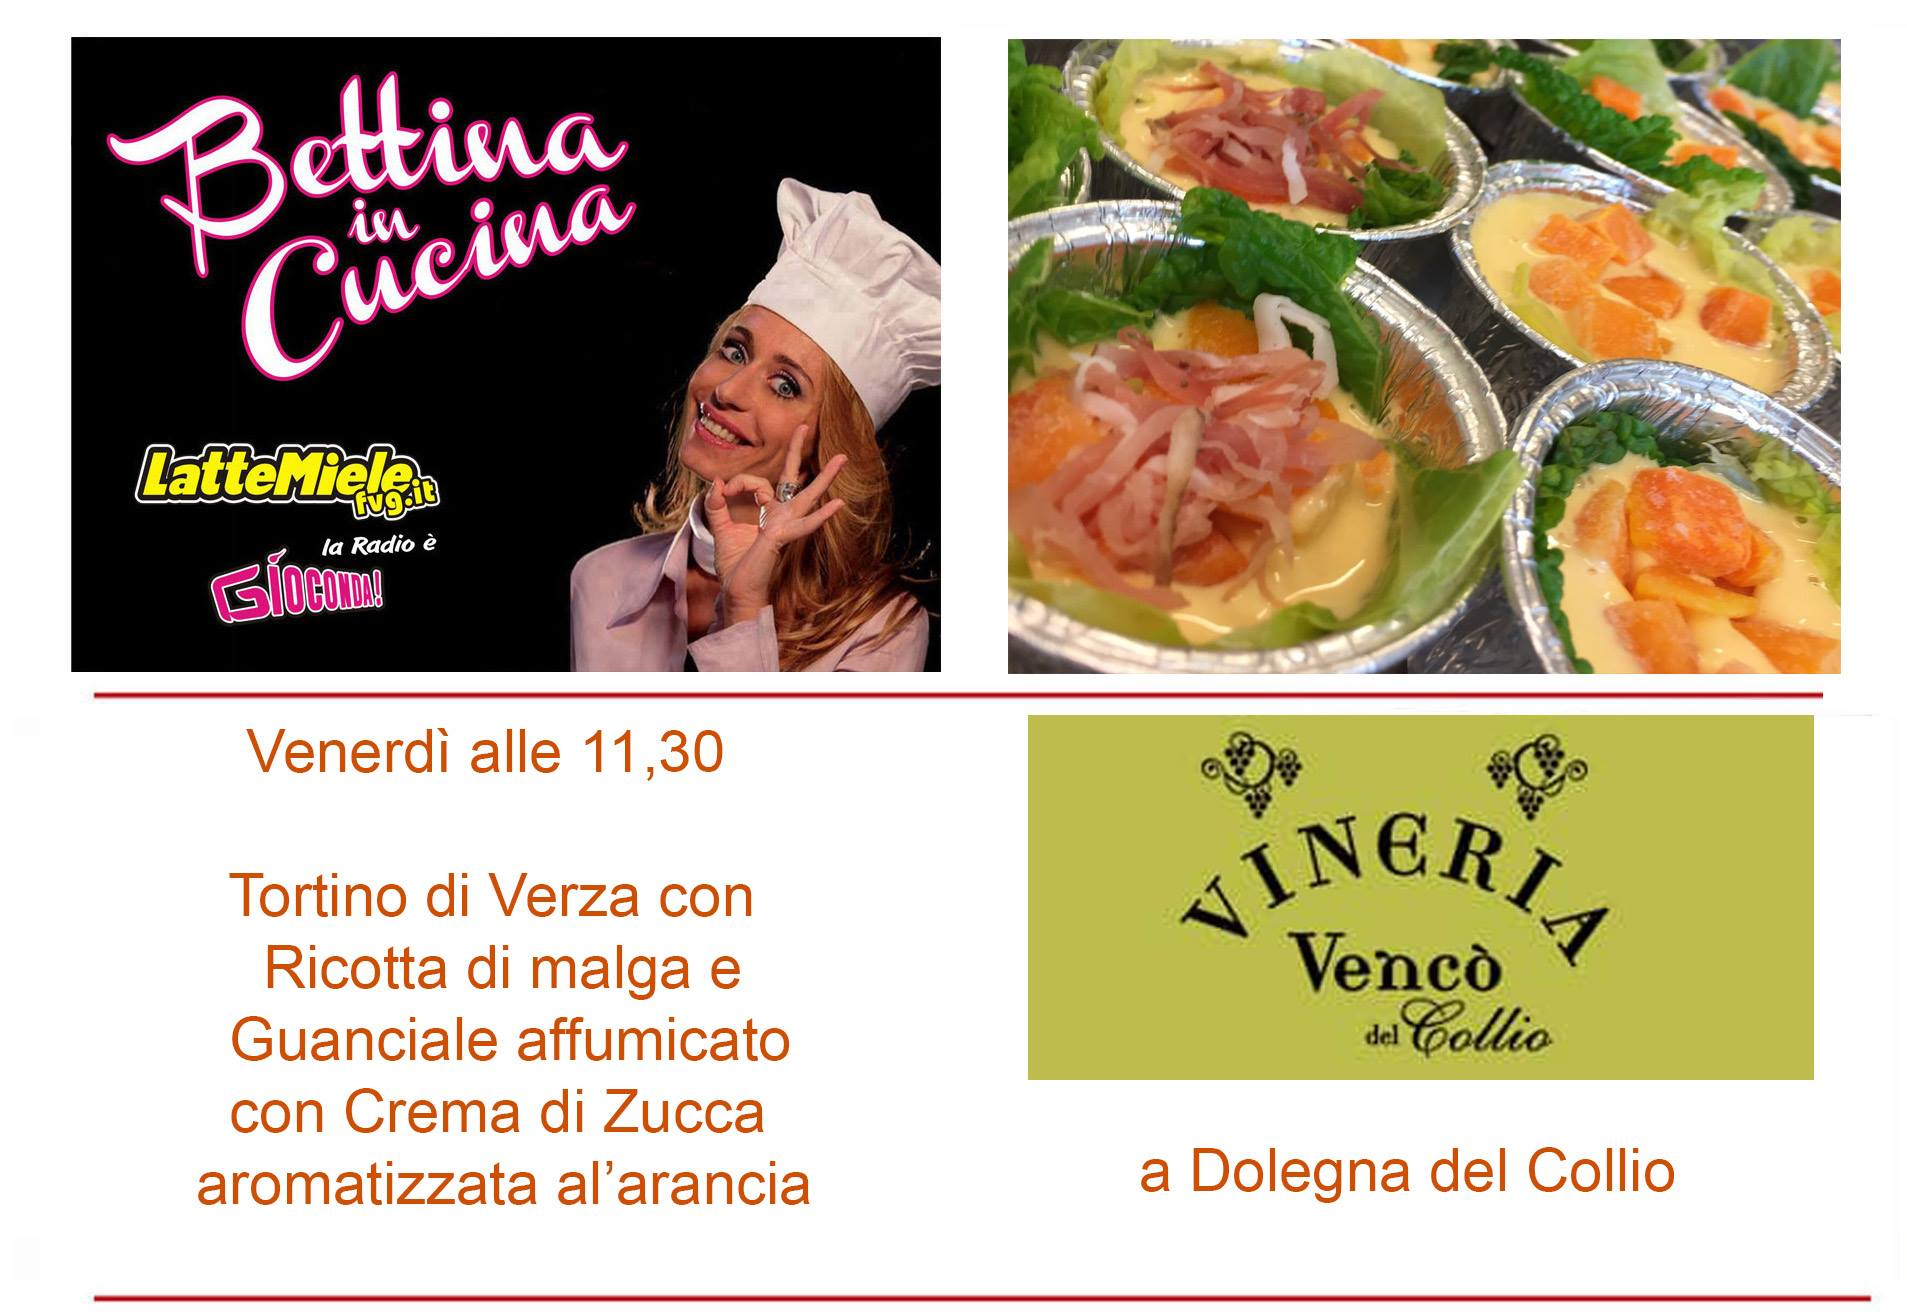 Bettina in Cucina con la Vineria Vencò del Collio